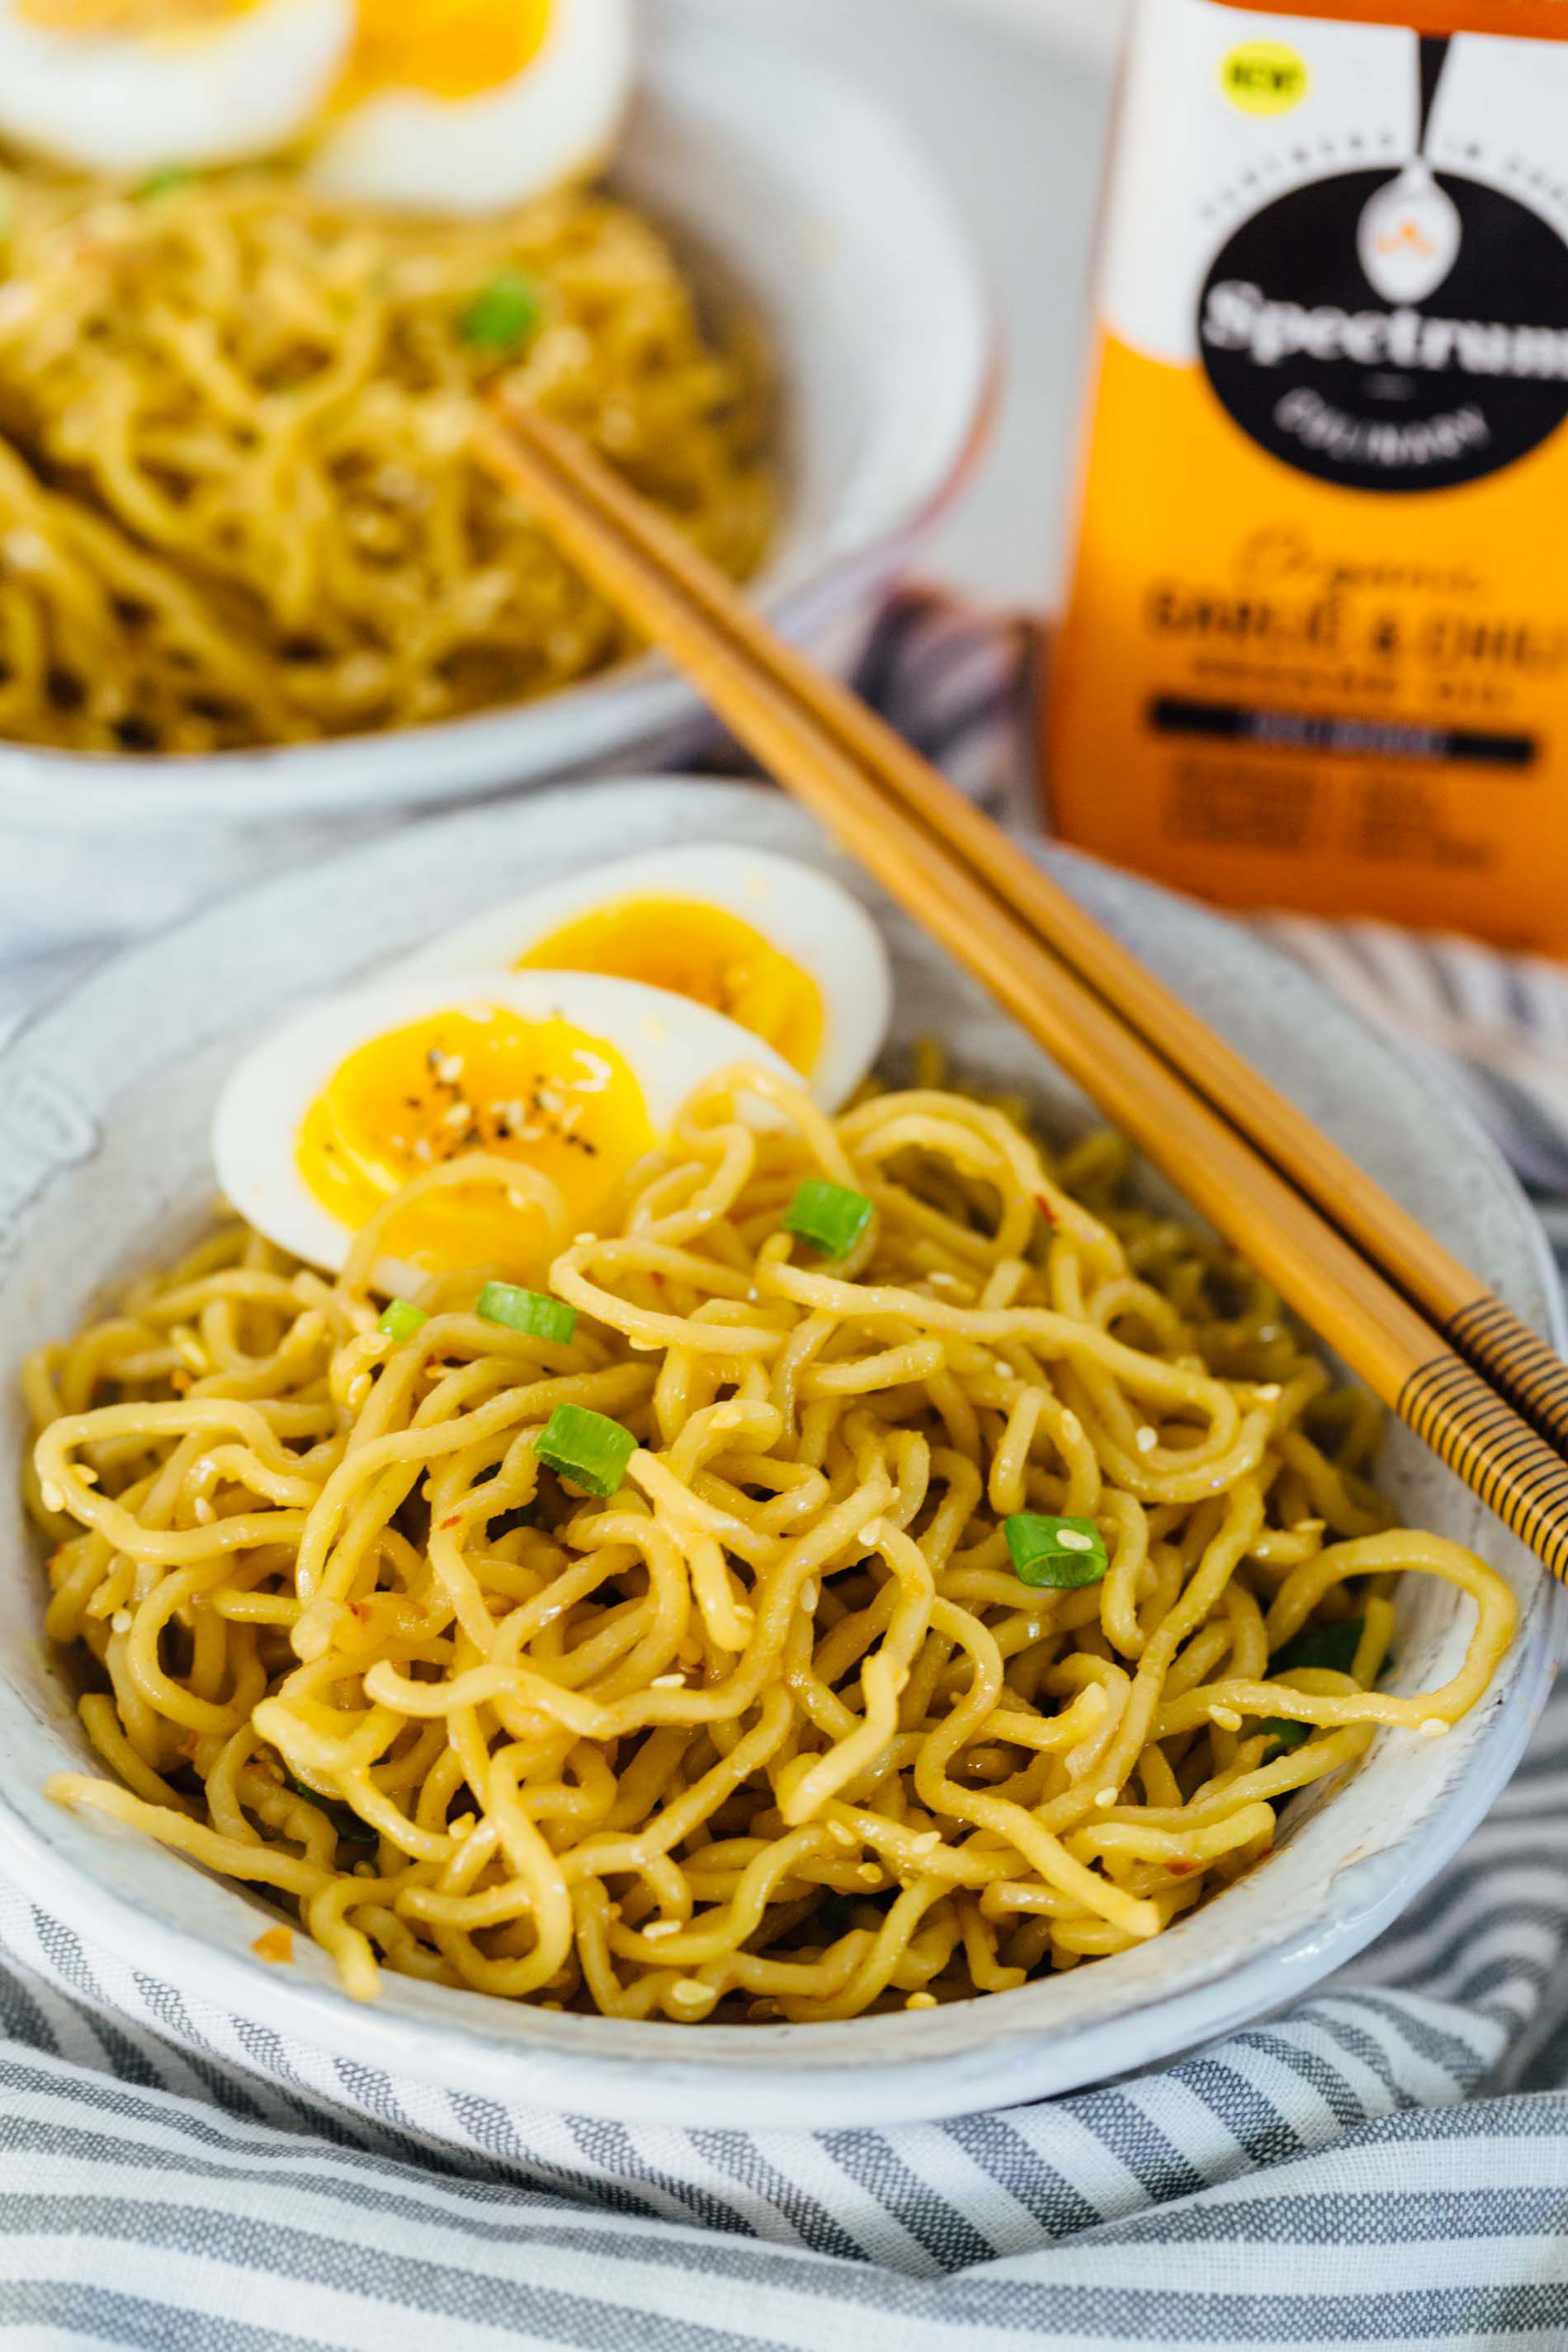 quick spicy sesame ramen takes less than 20 minutes to put together and it's got a subtle yet fiery kick! #ramen #ramenrecipe #sesameramen